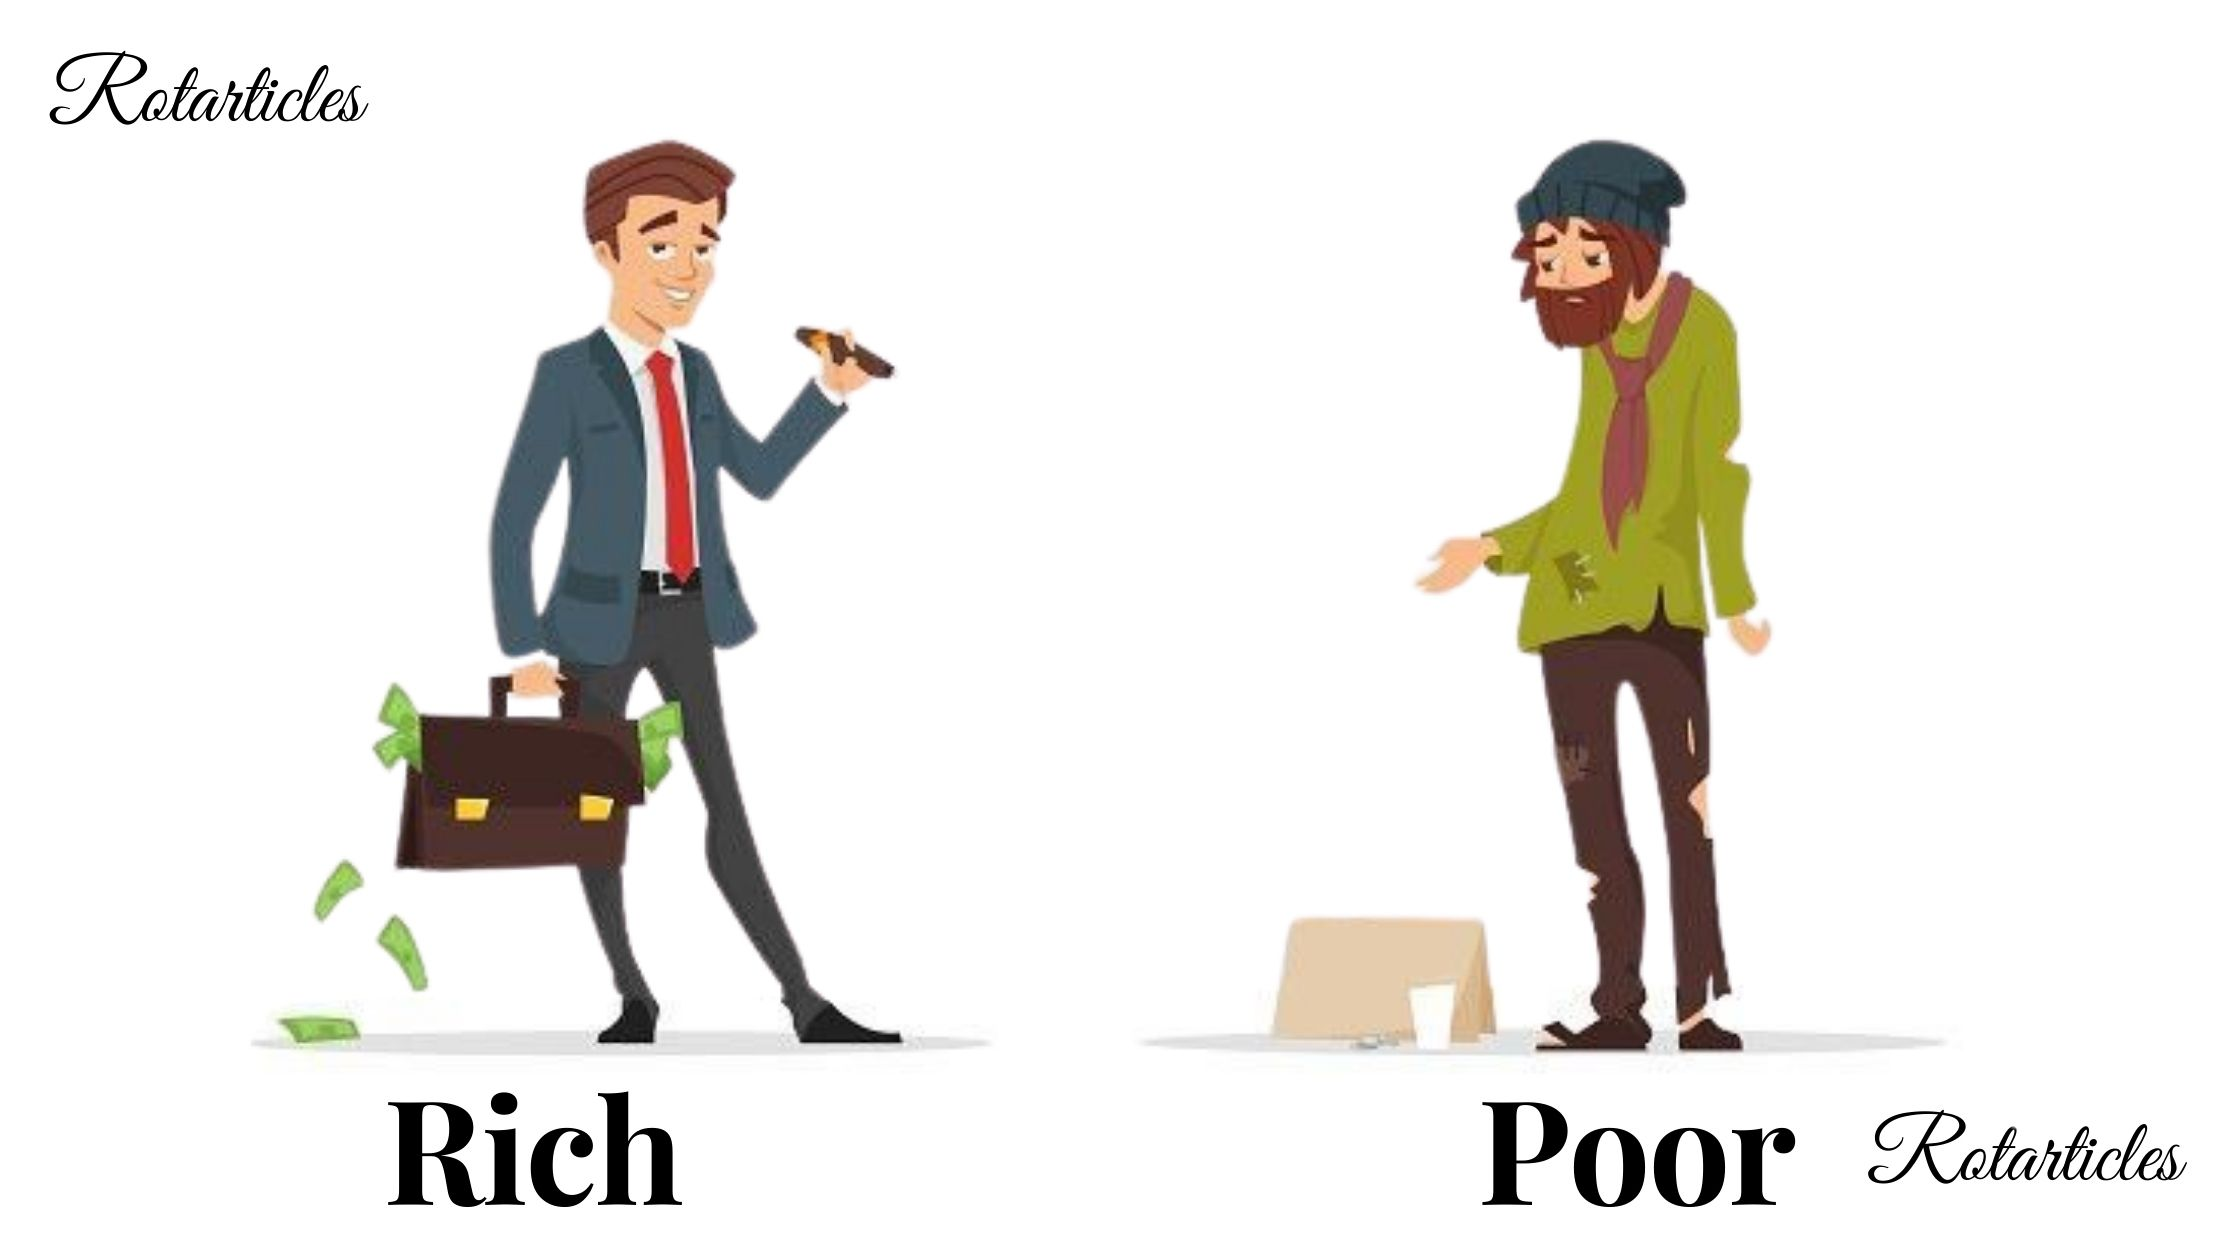 The Rich man and The Poor man